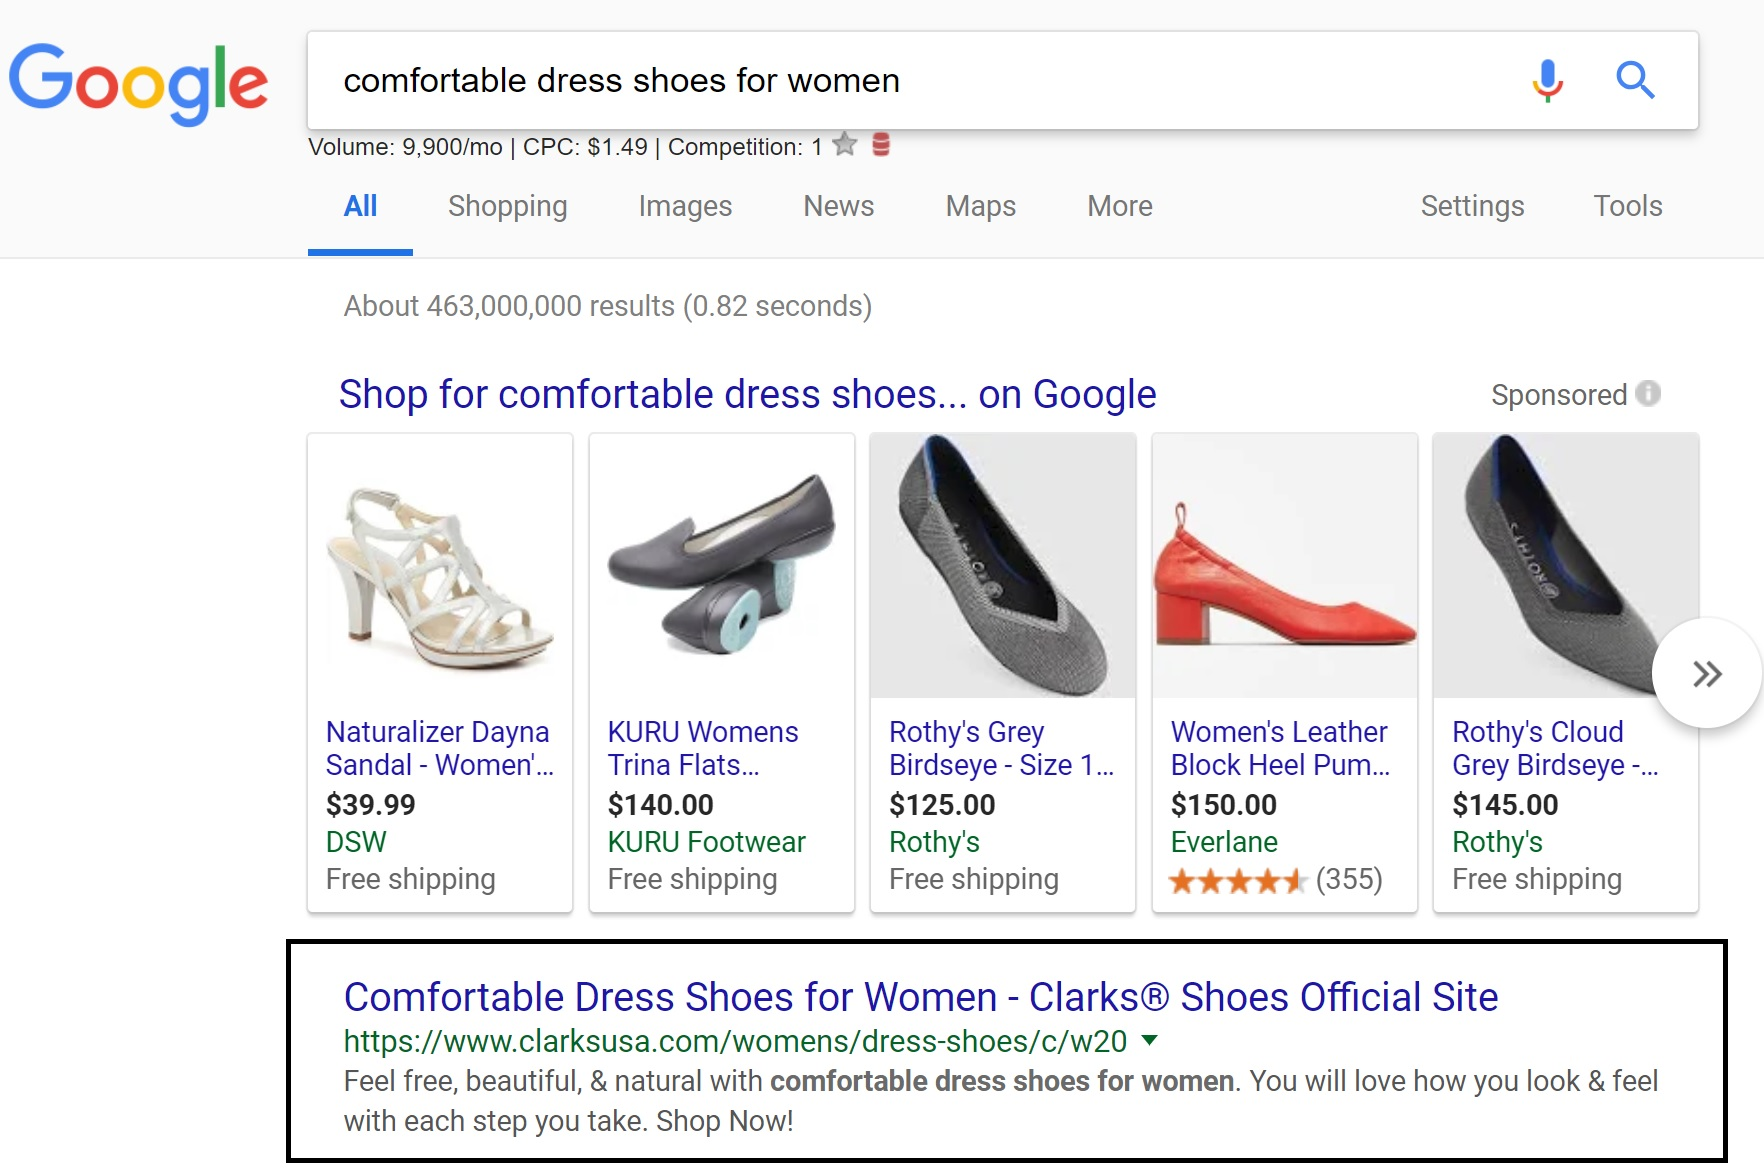 Ranking Comfortable Dress Shoes for Women at the Top of Google